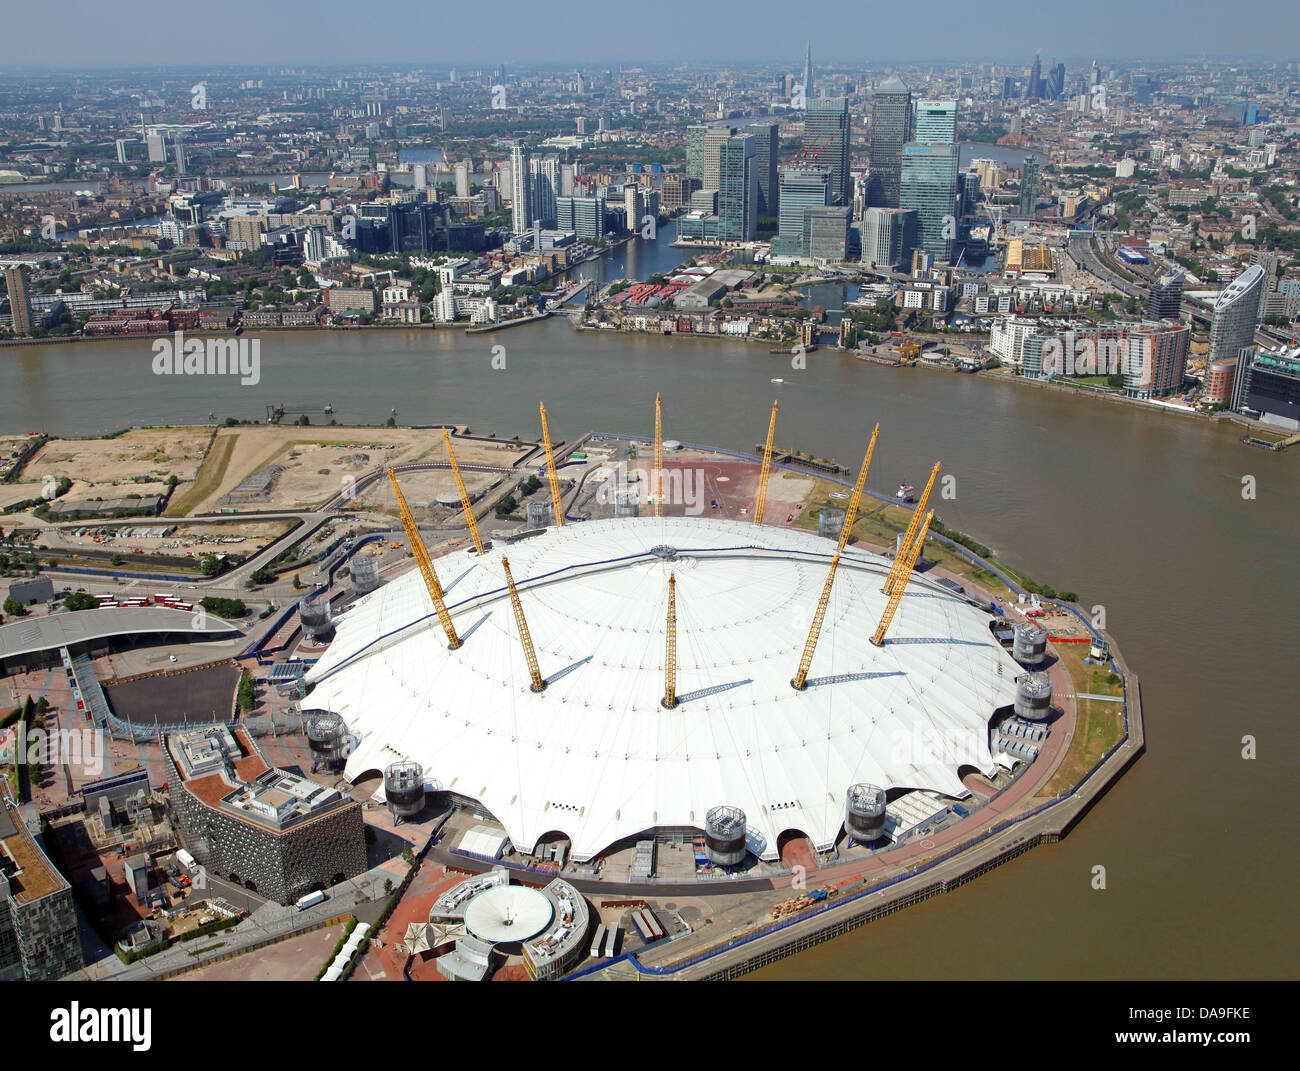 helicopter buy with Stock Photo Aerial View Of The O2 Arena Millennium Dome London With Canary Wharf 57987538 on D Va Overwatch Close Look At Model 571913216 besides Hal Pushes For Aesa Equipped Lca Tejas Mark I A Lca 1p As Interim Improved Version Of Mark I moreover Boeings New 2040c Eagle  mercial Is Incredibly Badass further 321058065804 together with Kaiju Battle At Mount Rainier 615749064.